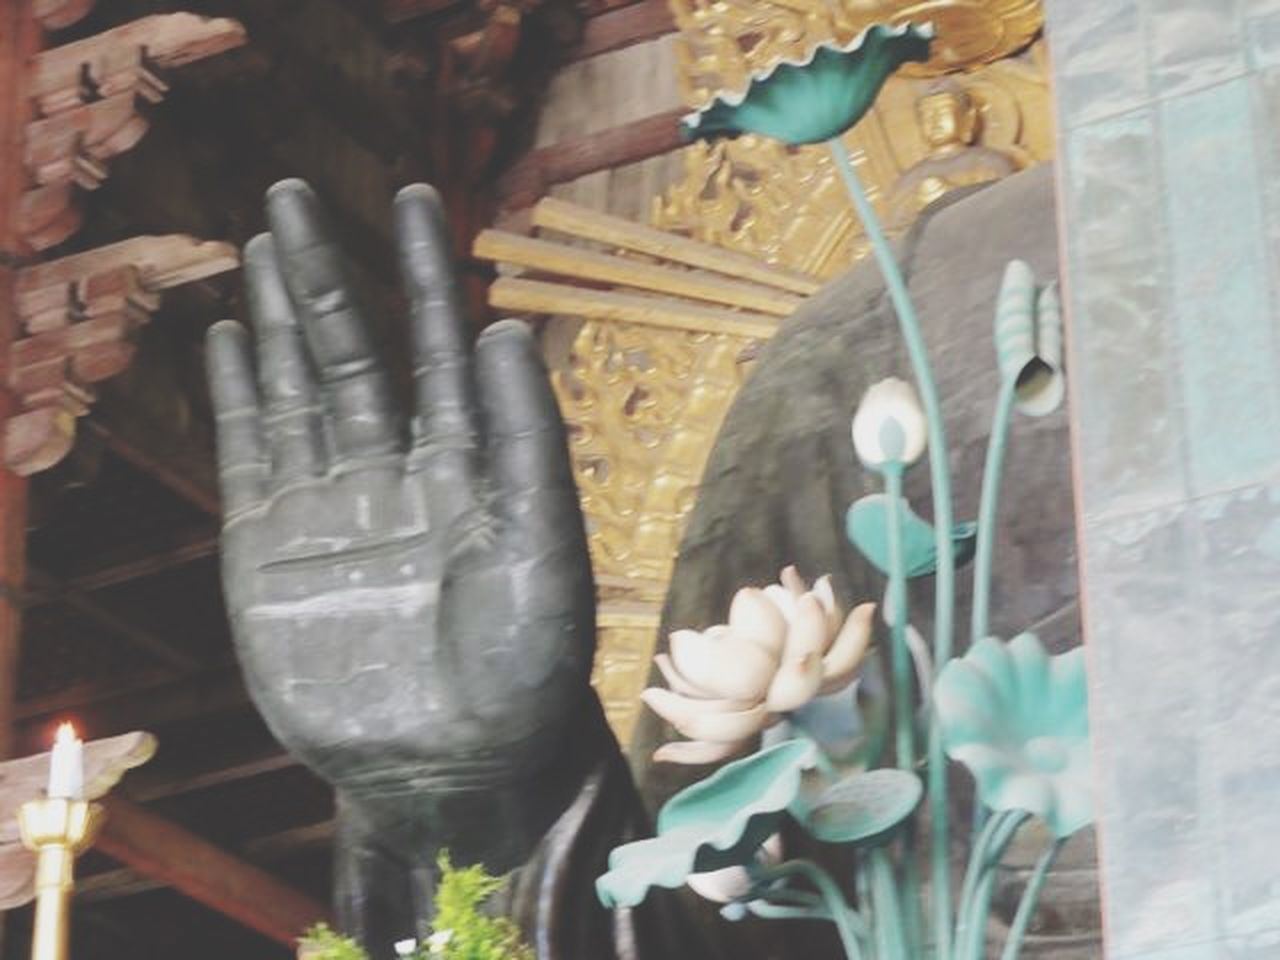 Streetphotography Japanese Culture Budda Nara Godhand Seeing The Sights